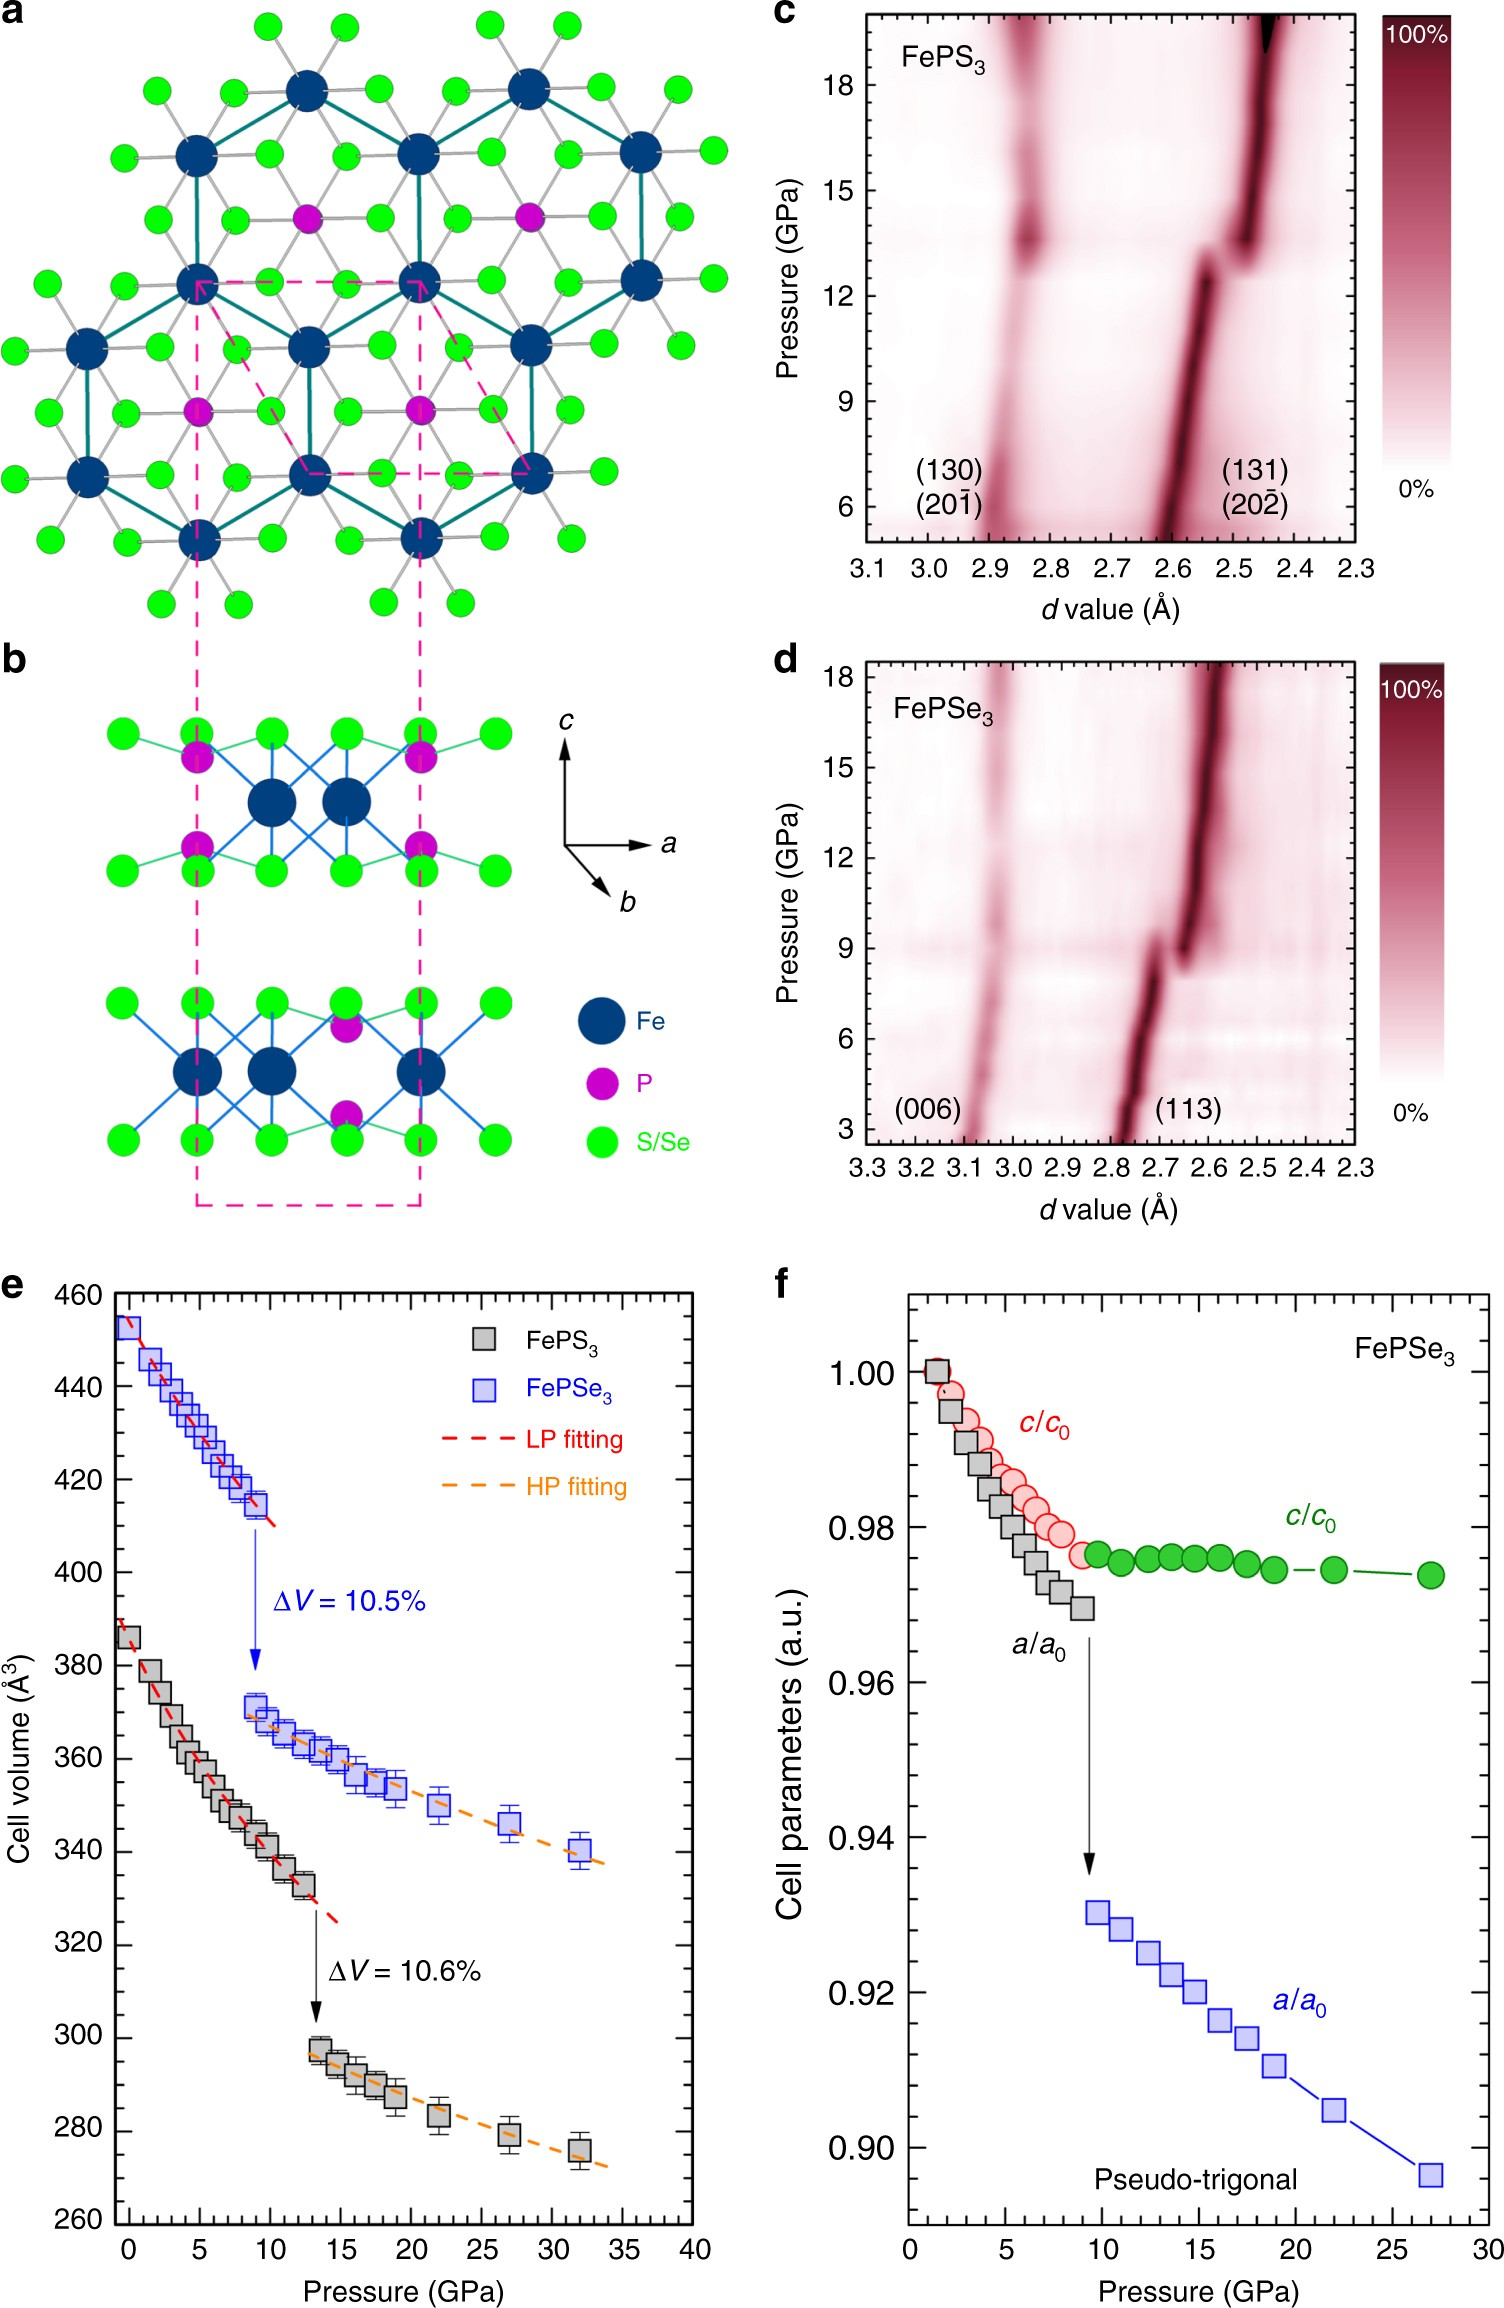 Emergent Superconductivity In An Iron Based Honeycomb Lattice Atomic 4 Starter Wire Diagram Initiated By Pressure Driven Spin Crossover Nature Communications